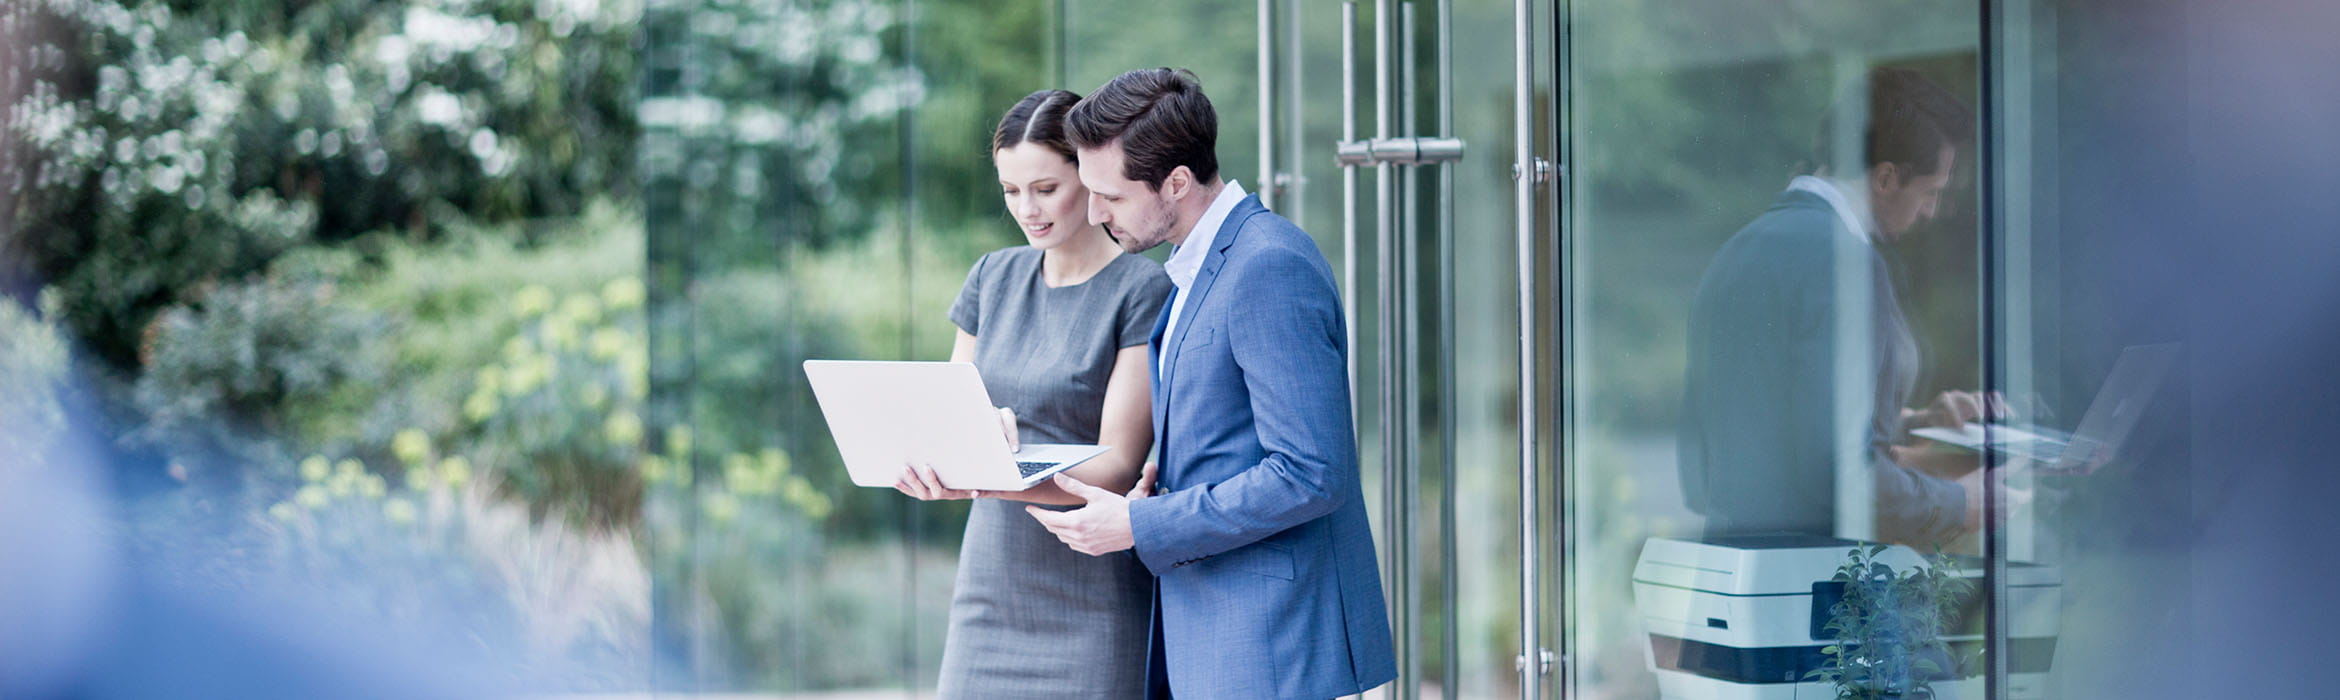 two colleagues view a tablet device